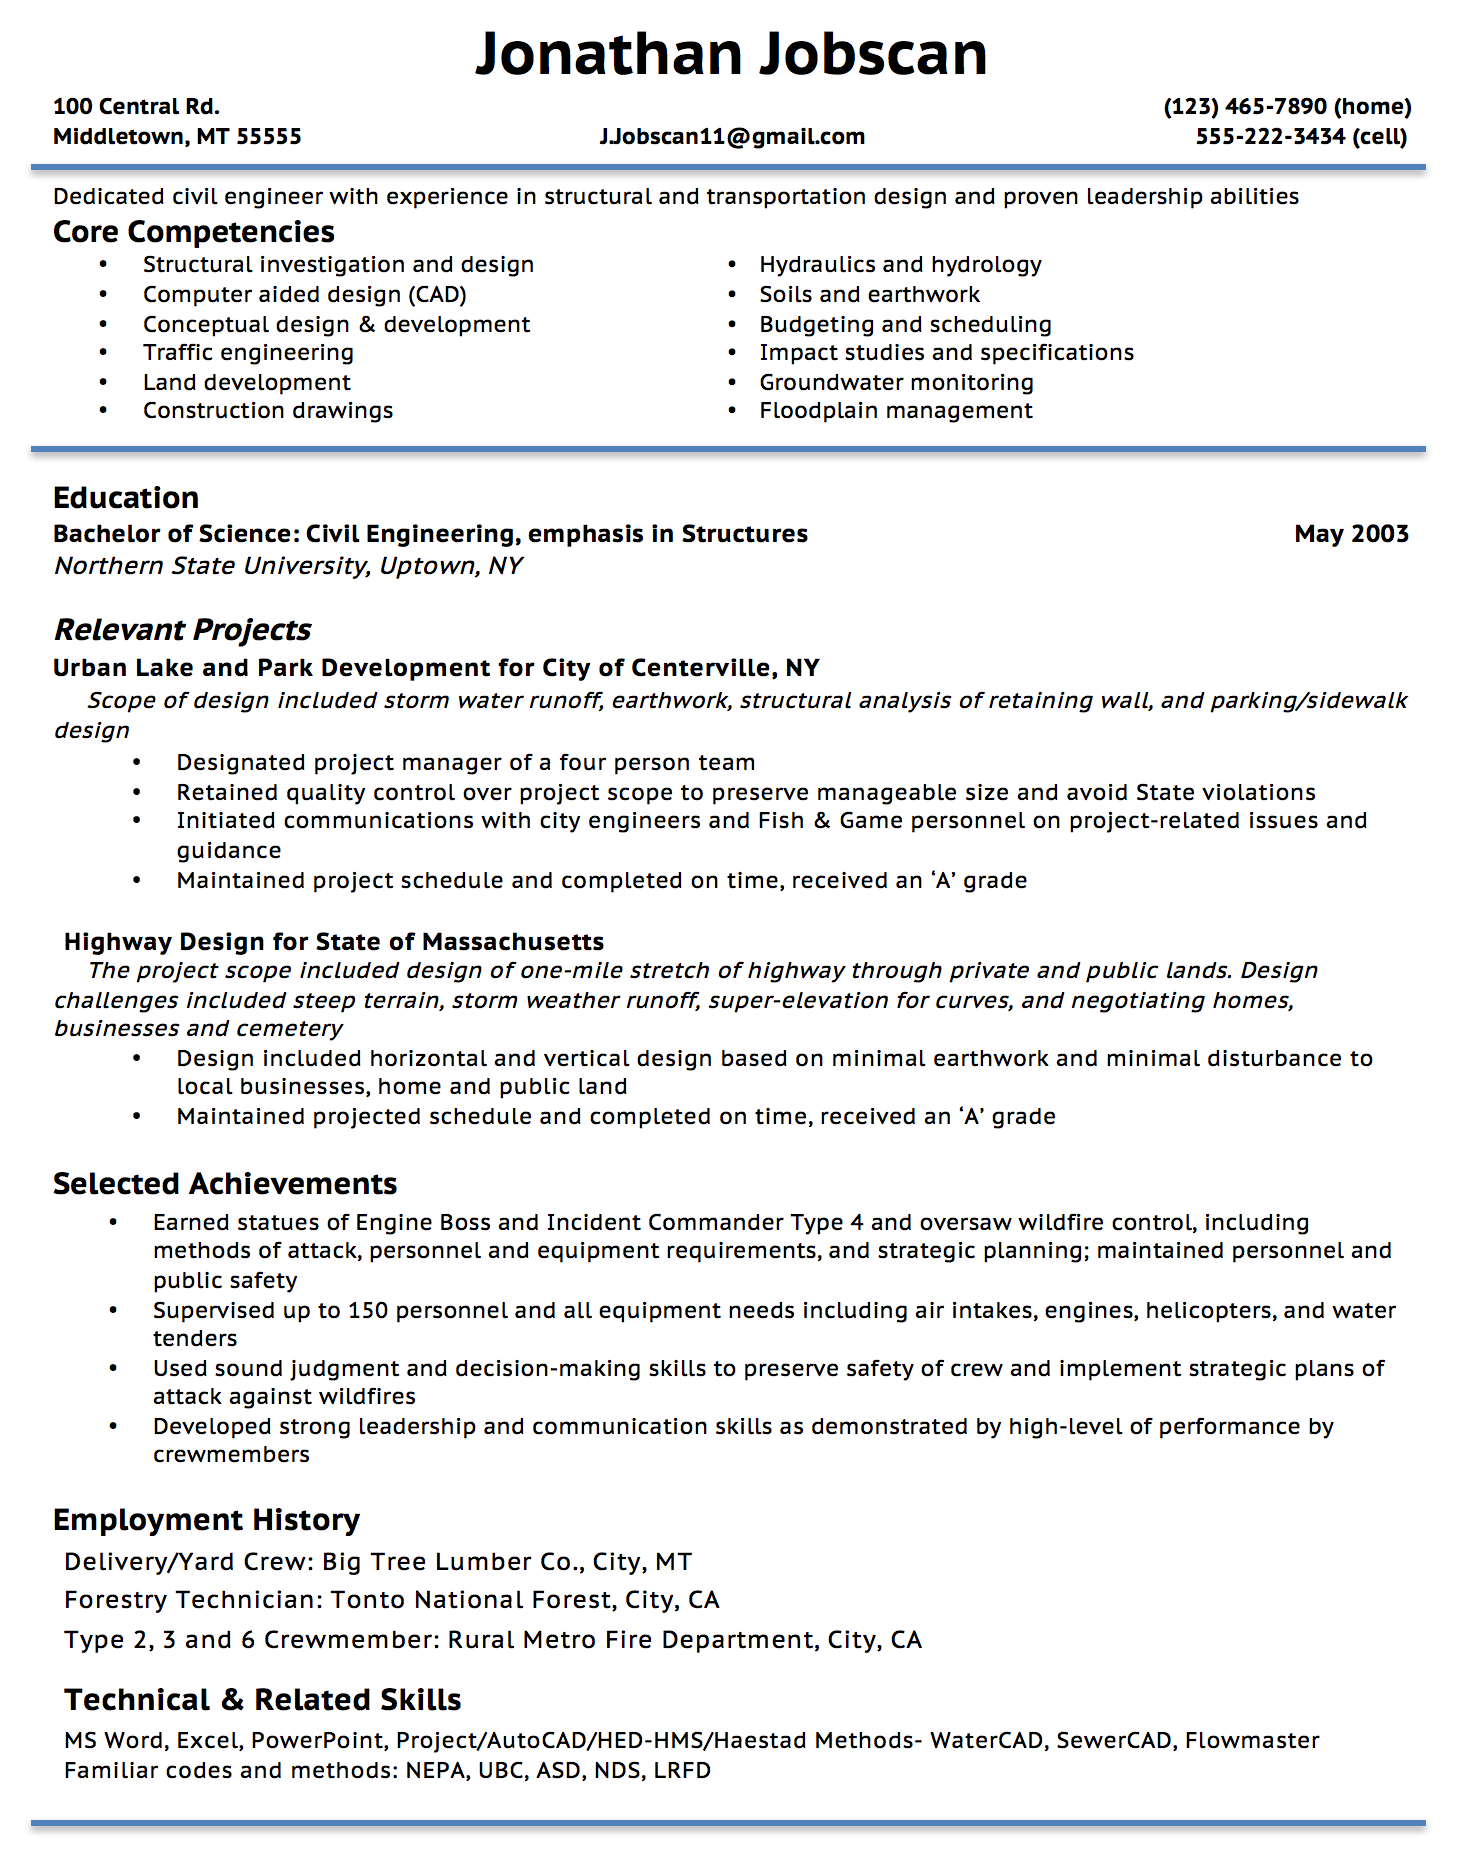 Opposenewapstandardsus  Pretty Resume Writing Guide  Jobscan With Great Example Of A Functional Resume Format With Extraordinary Is Resume Now Safe Also Entertainment Industry Resume In Addition Medical Assistant Externship Resume And Investment Banking Associate Resume As Well As Free Ms Word Resume Templates Additionally Resume Education Section Example From Jobscanco With Opposenewapstandardsus  Great Resume Writing Guide  Jobscan With Extraordinary Example Of A Functional Resume Format And Pretty Is Resume Now Safe Also Entertainment Industry Resume In Addition Medical Assistant Externship Resume From Jobscanco